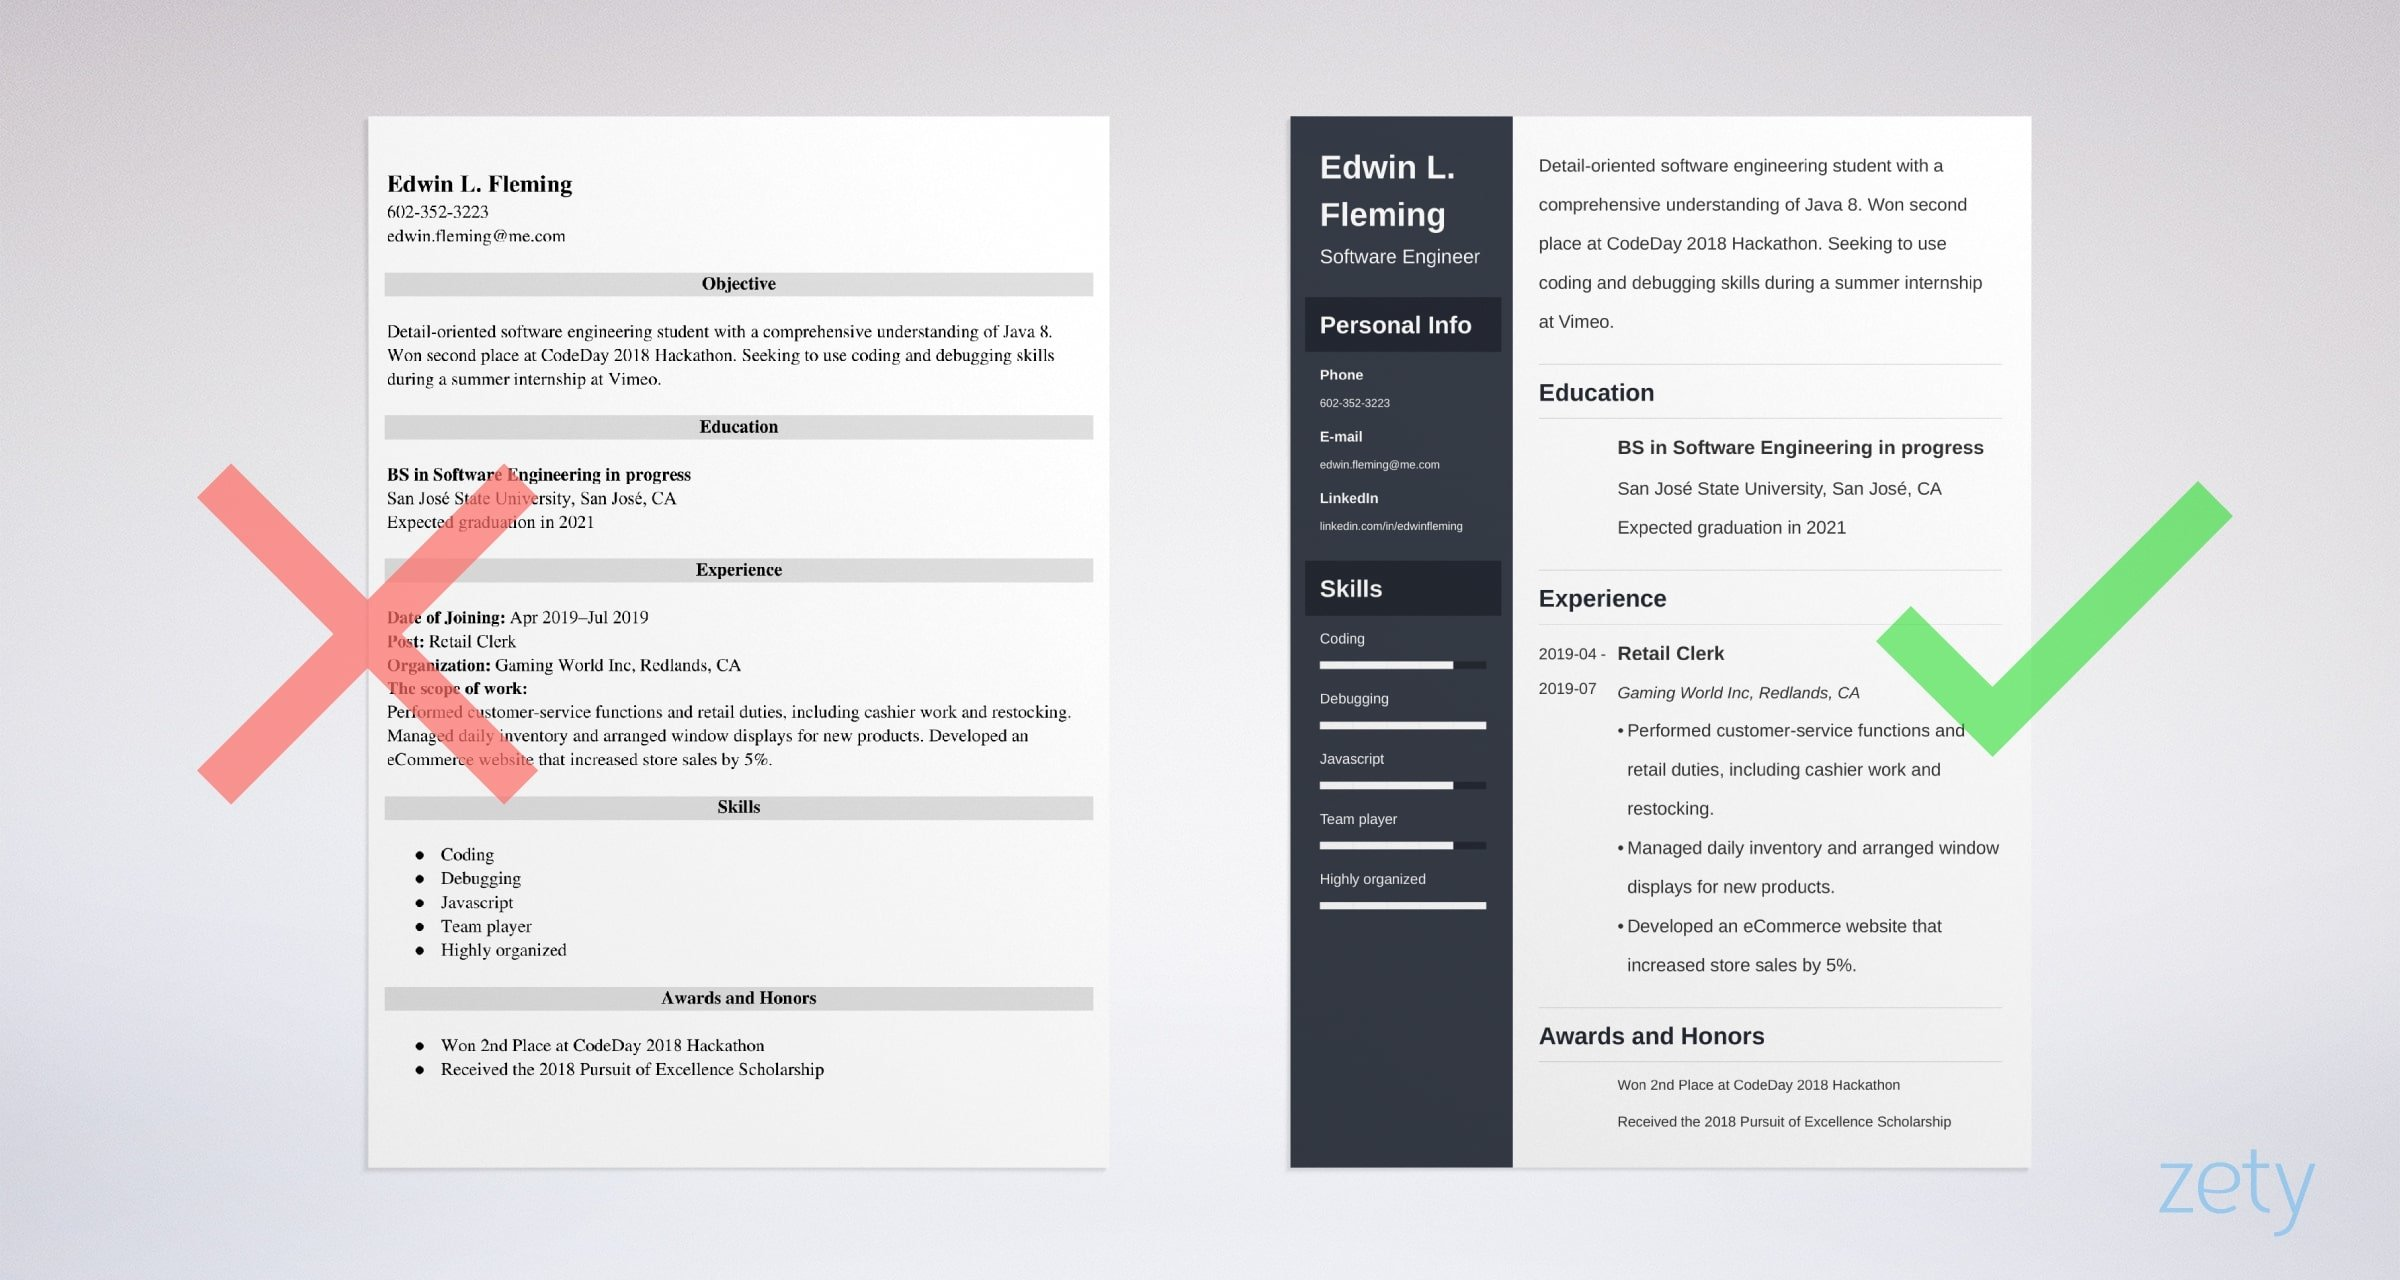 Engineering Internship Resume Examples Guide For Students